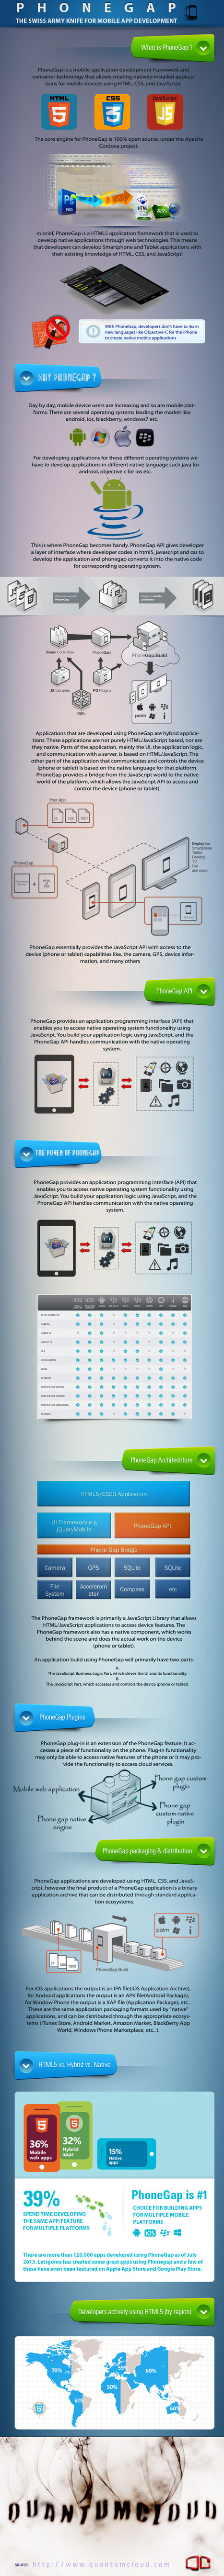 Benefits of Using PhoneGap for Mobile Application Development - InfoGraphic | What is Responsive Web Design and why should you care? | Scoop.it